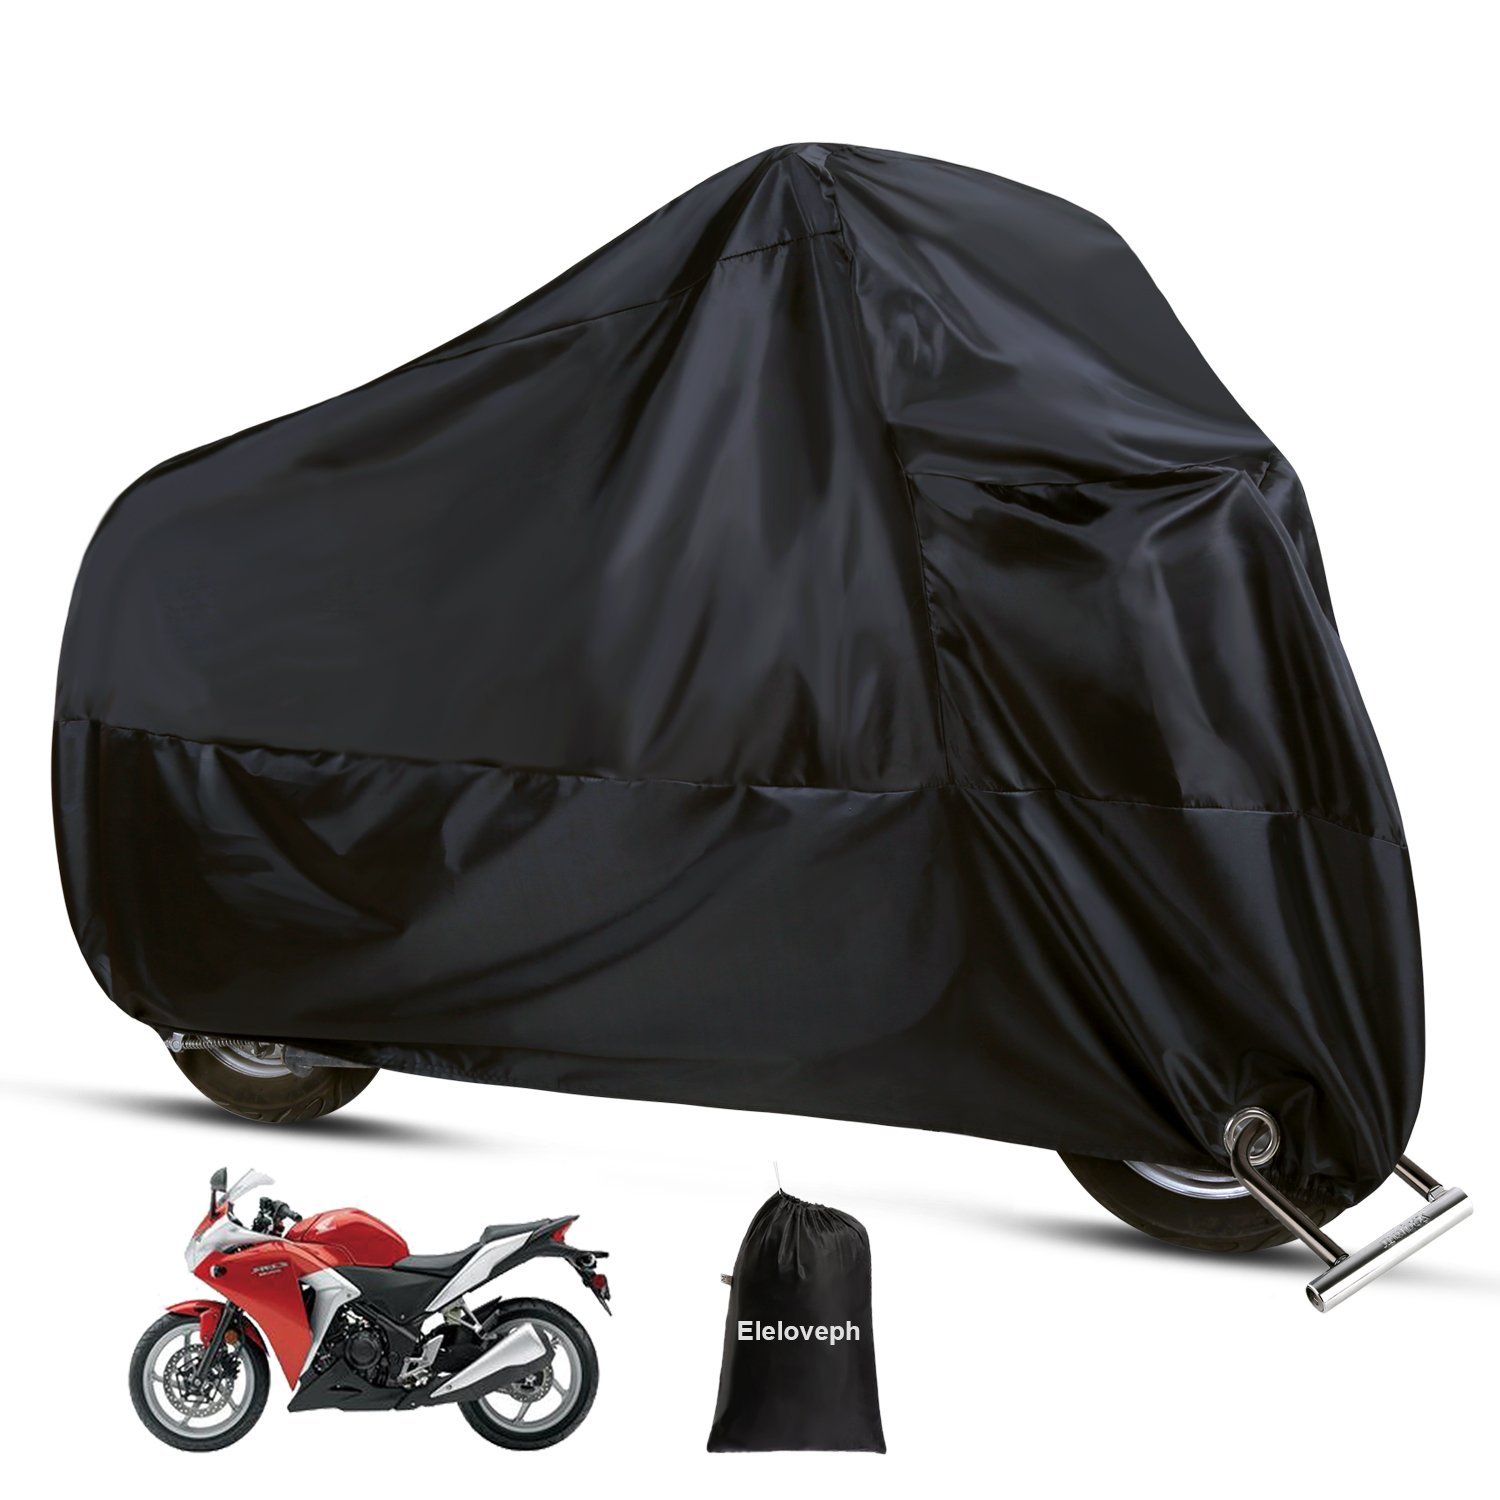 Motorcycle Cover - All Season Waterproof Outdoor Protection - Precision Fit for Tour Bikes, Choppers and Cruisers - Eleloveph Protect Against Dust,Rain,Snow and Sun (XXXXL-116''x43''x55'', Black)